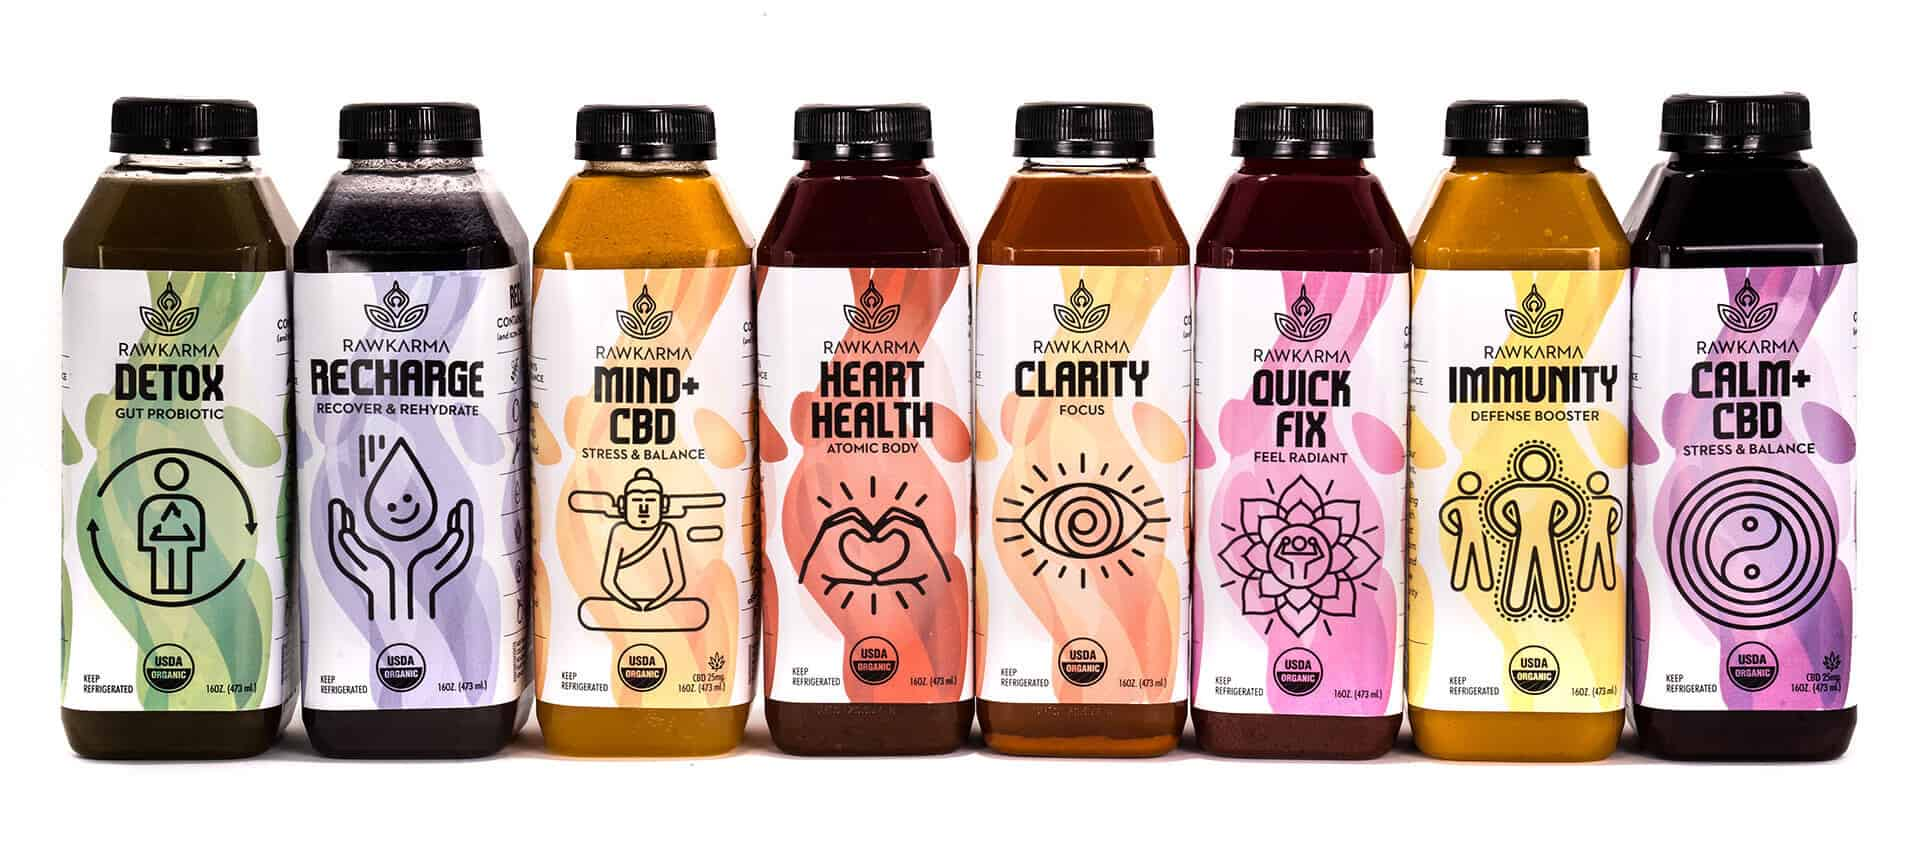 RawKarma Juice 100% Organic Non-GMO Healthy Juices